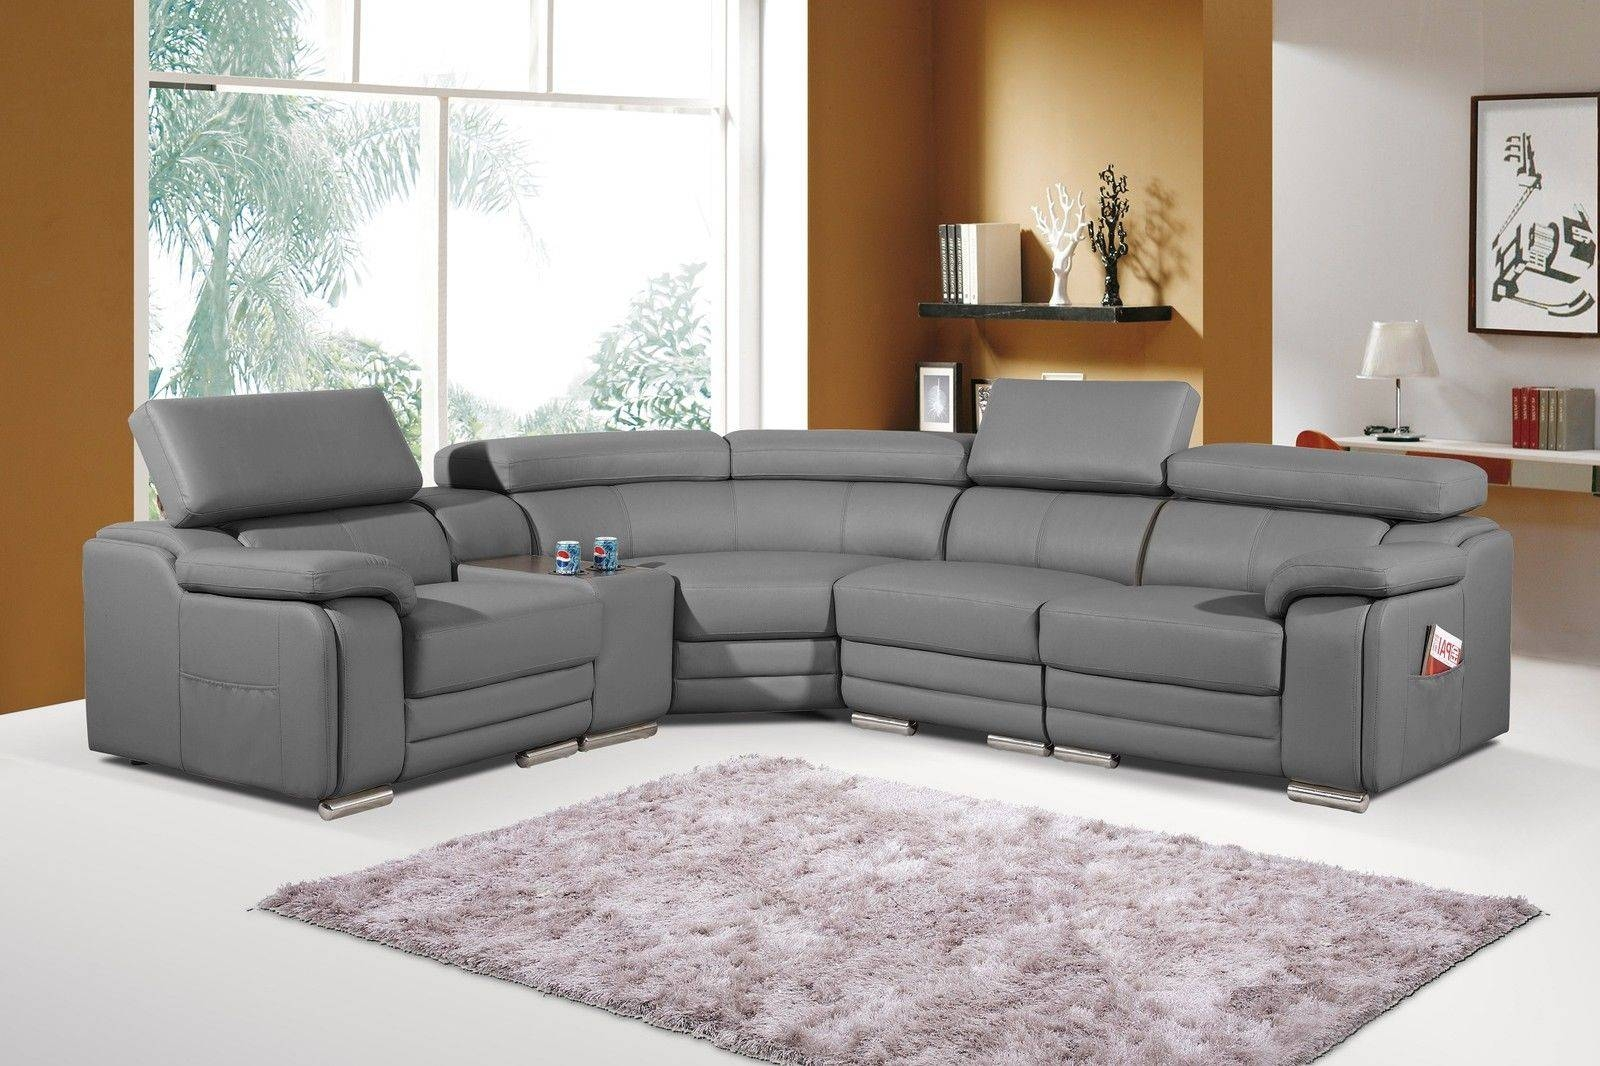 Sofas Center : Leather Corner Sofa Striking Photos Concept Sofas for Corner Sofa Leather (Image 23 of 30)